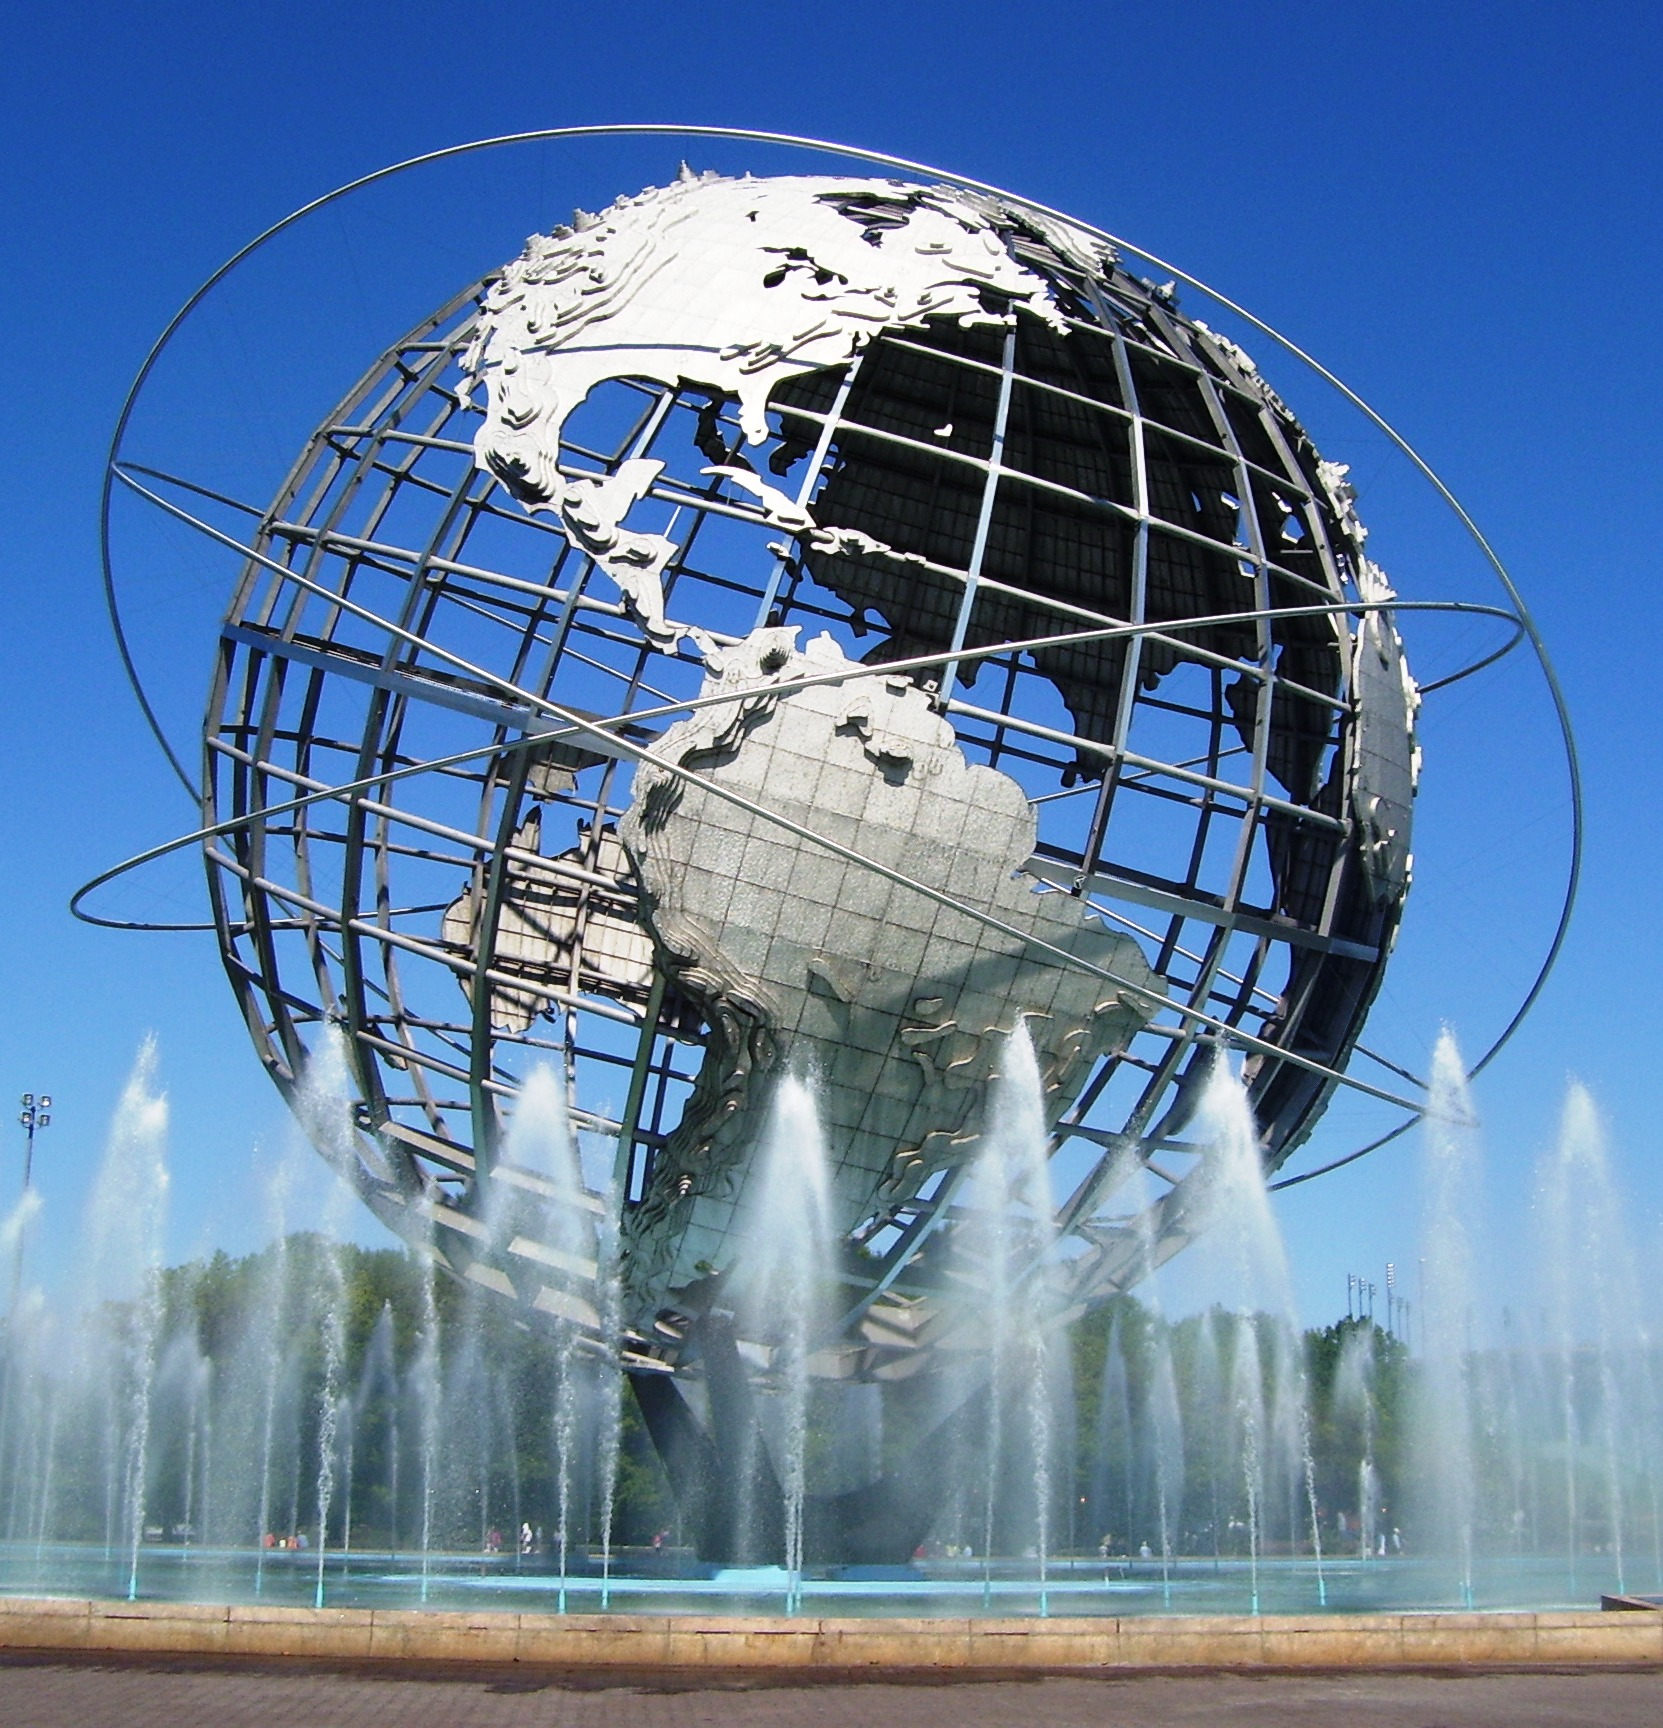 The Unisphere in Flushing Meadows Corona Park. Photo by Beyond Ken via Wikimedia Commons